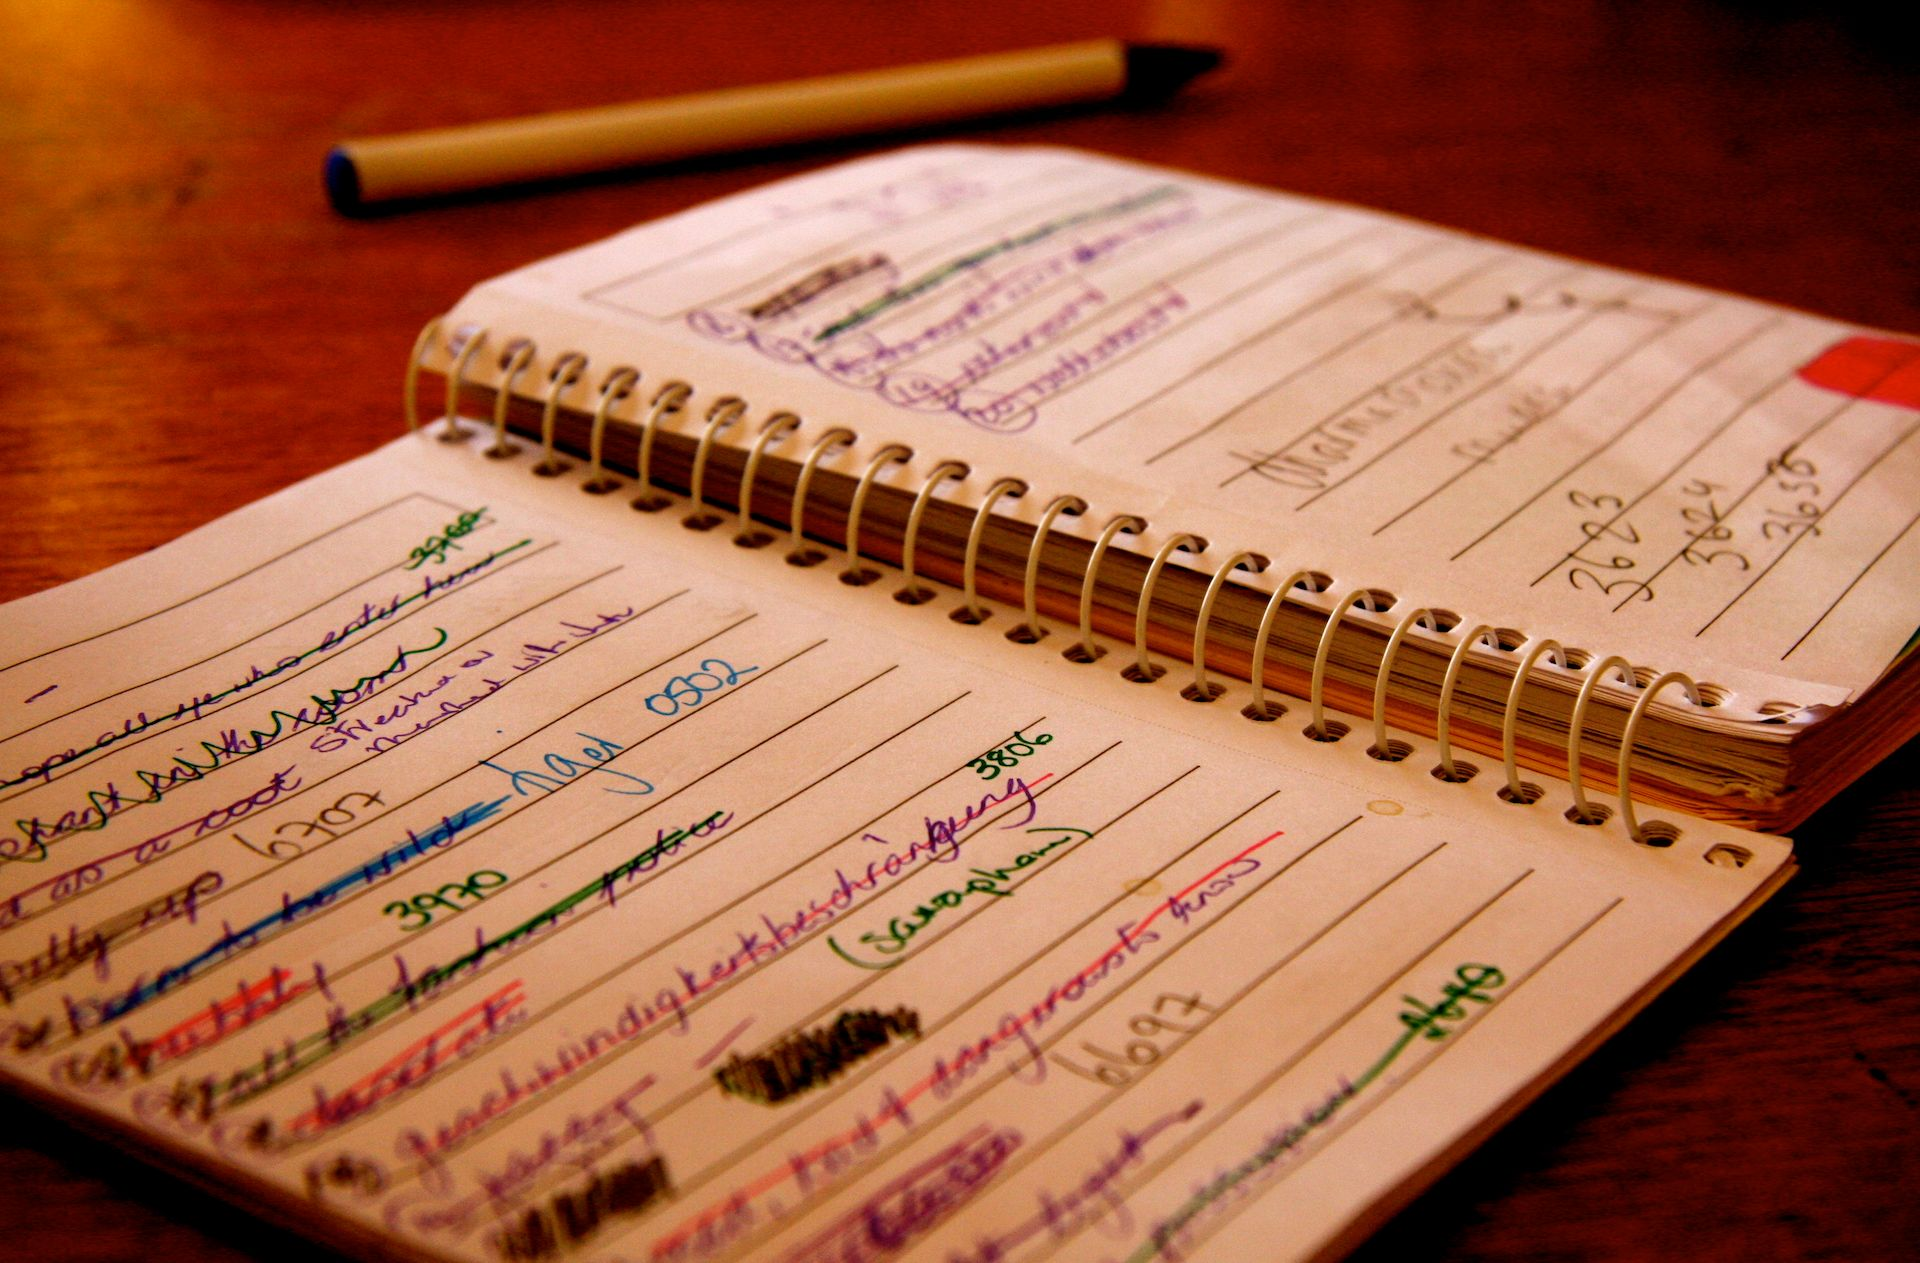 Avoiding mistakes with the Not-To-Do-List